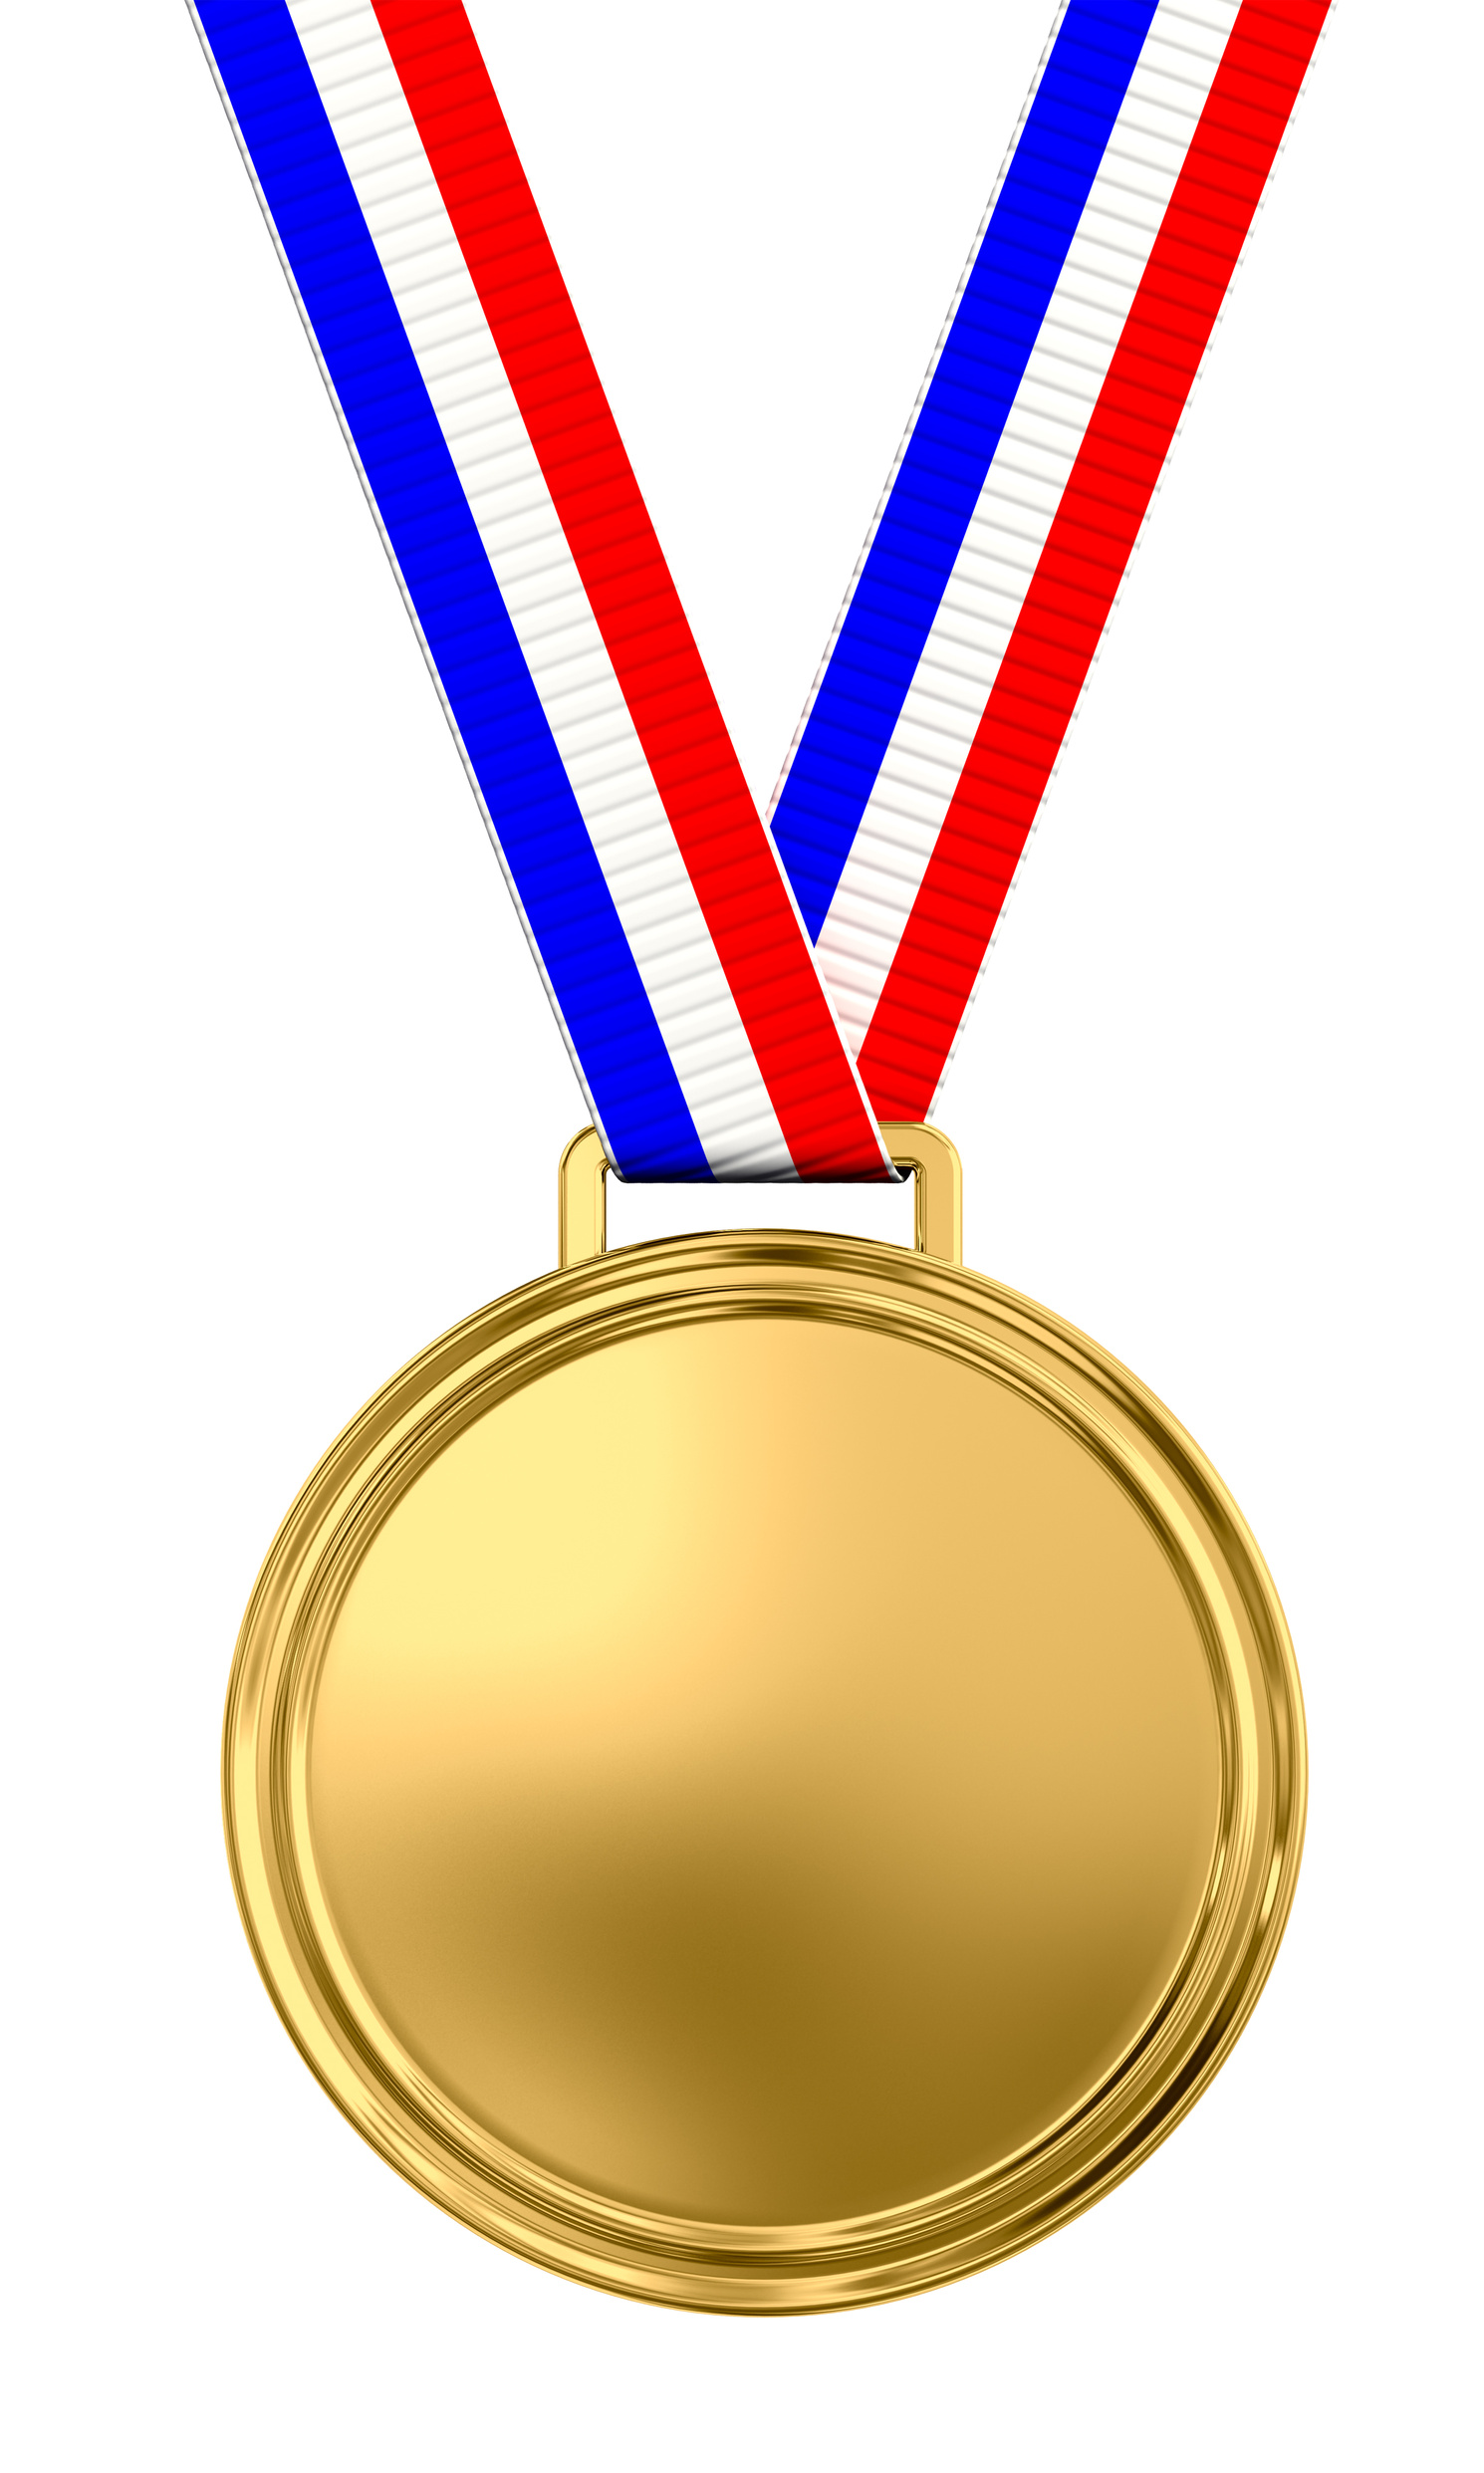 Olympic gold medal clipart.